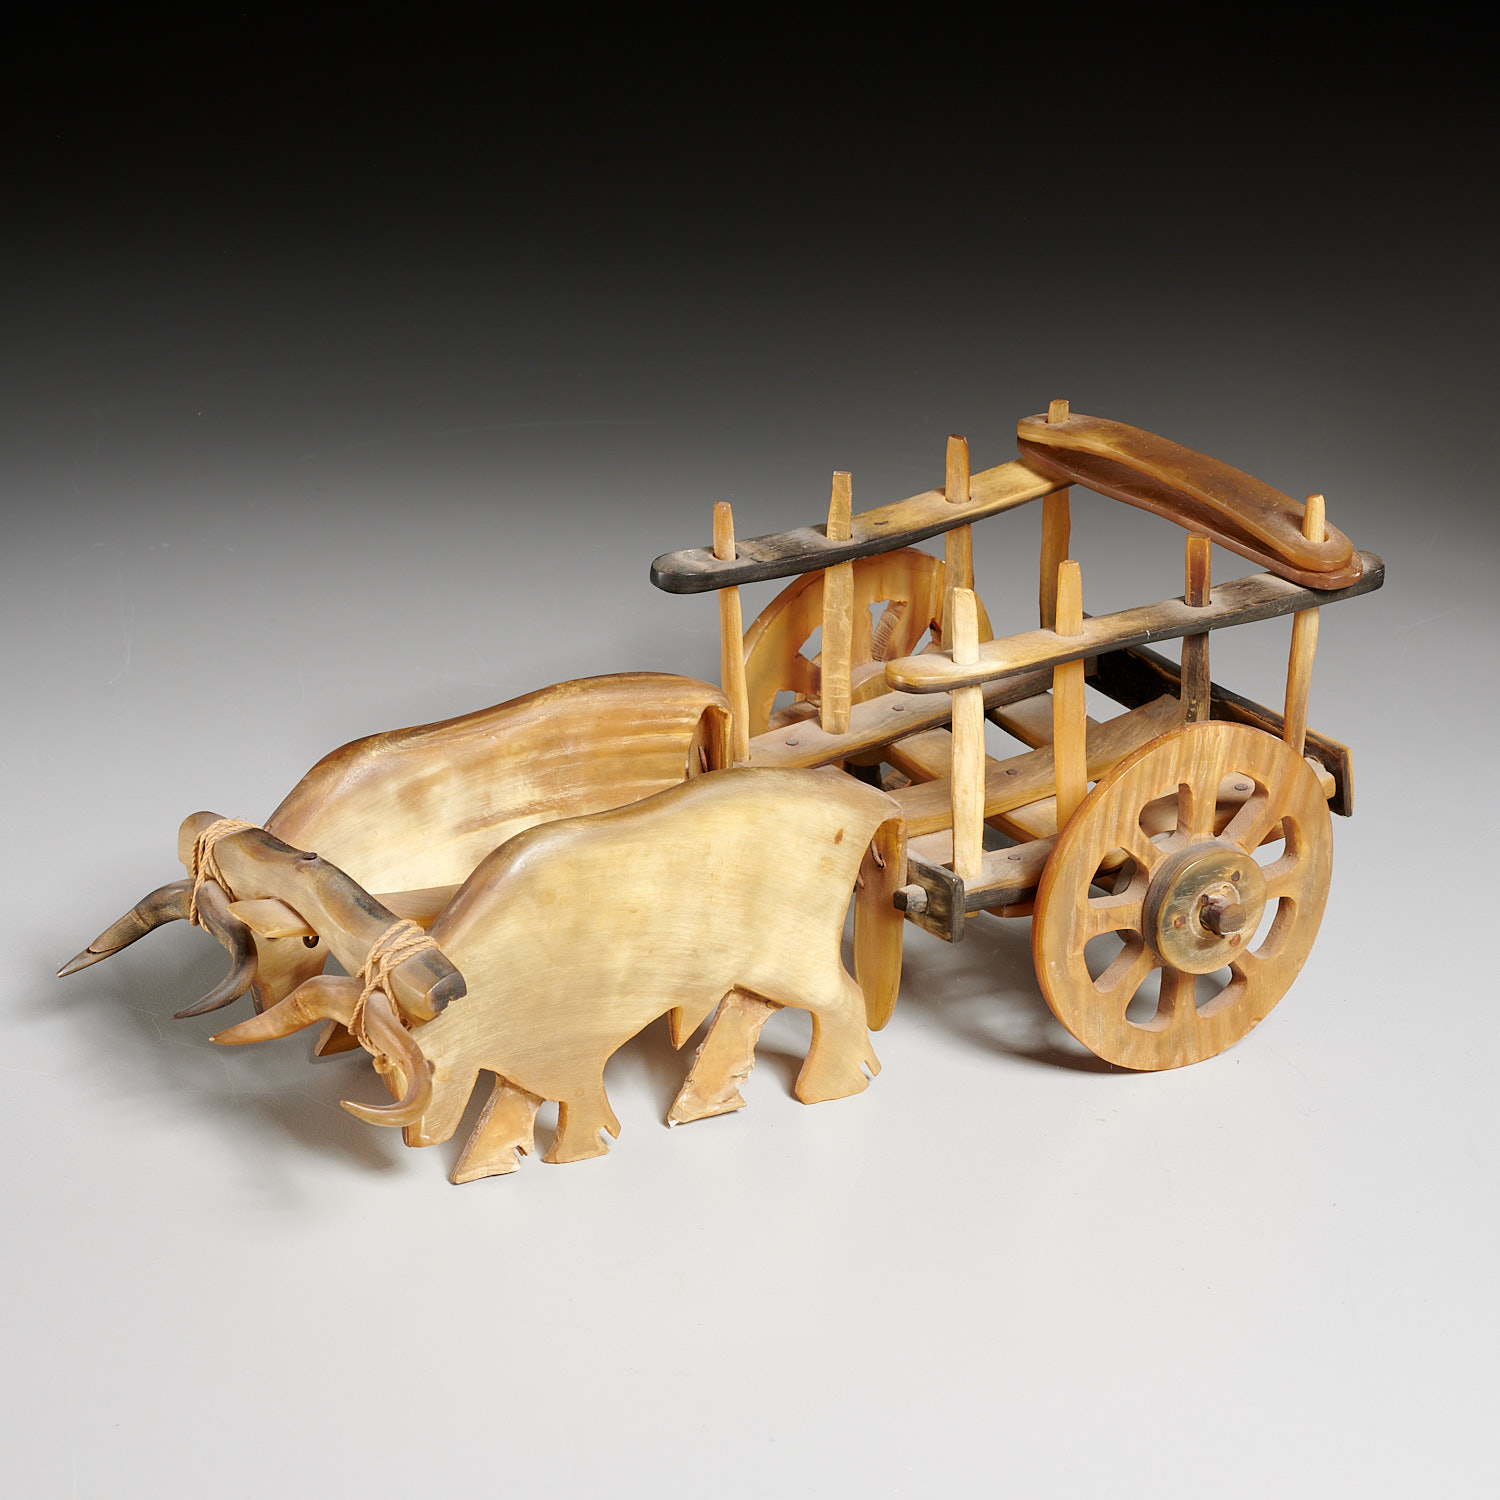 Lot 2317 - American Folk horn oxen and cart, published